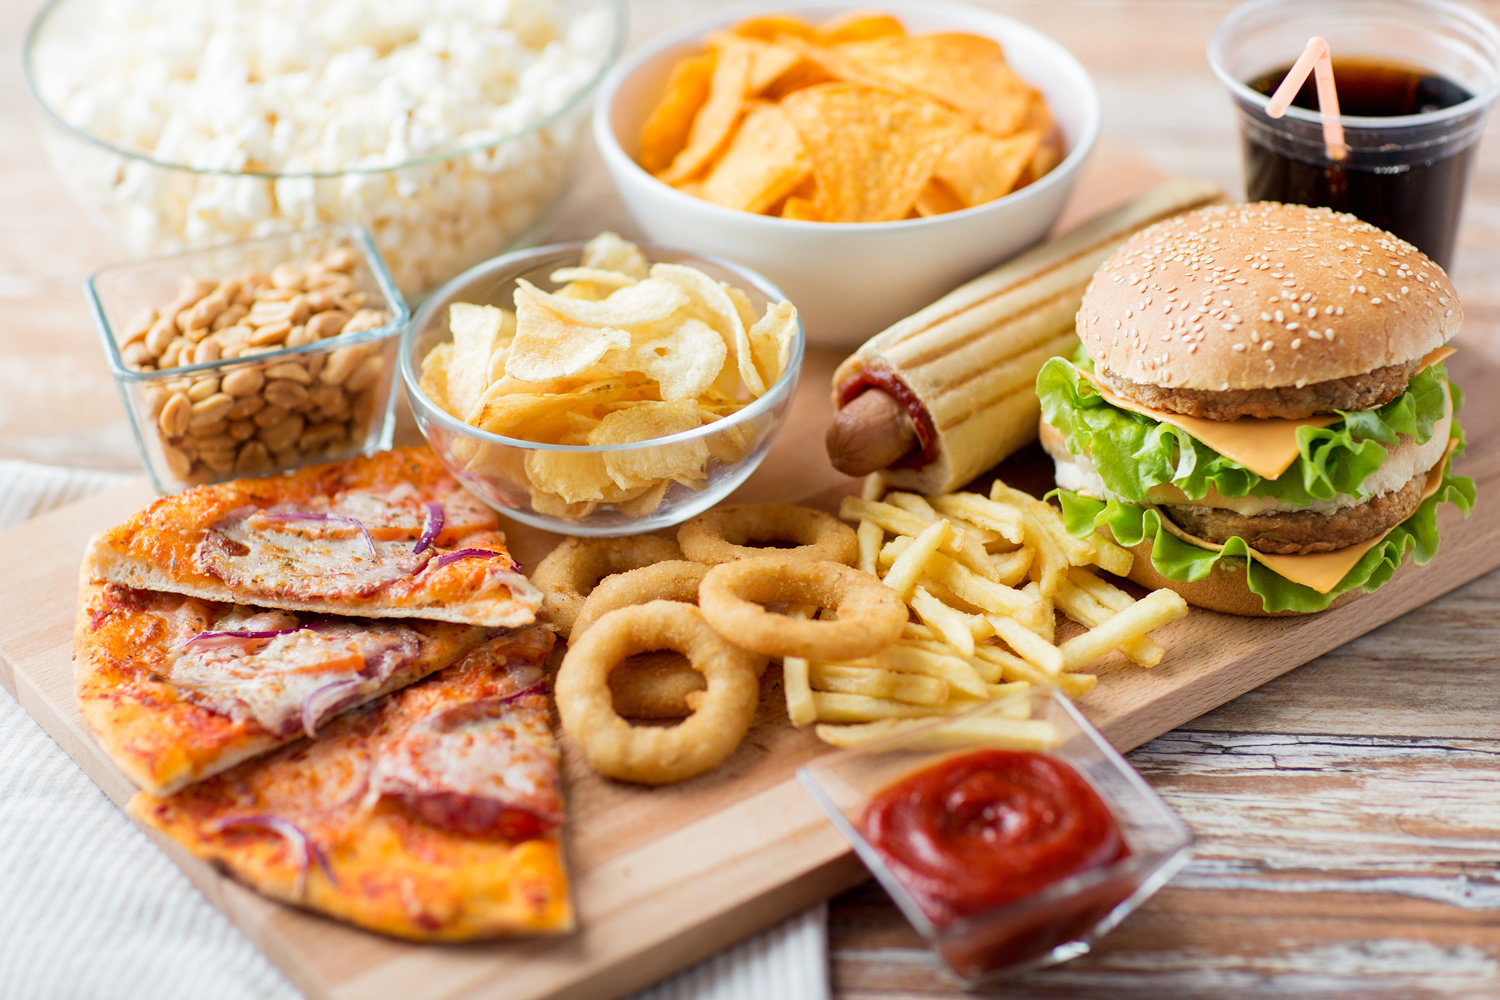 foods causing inflammation